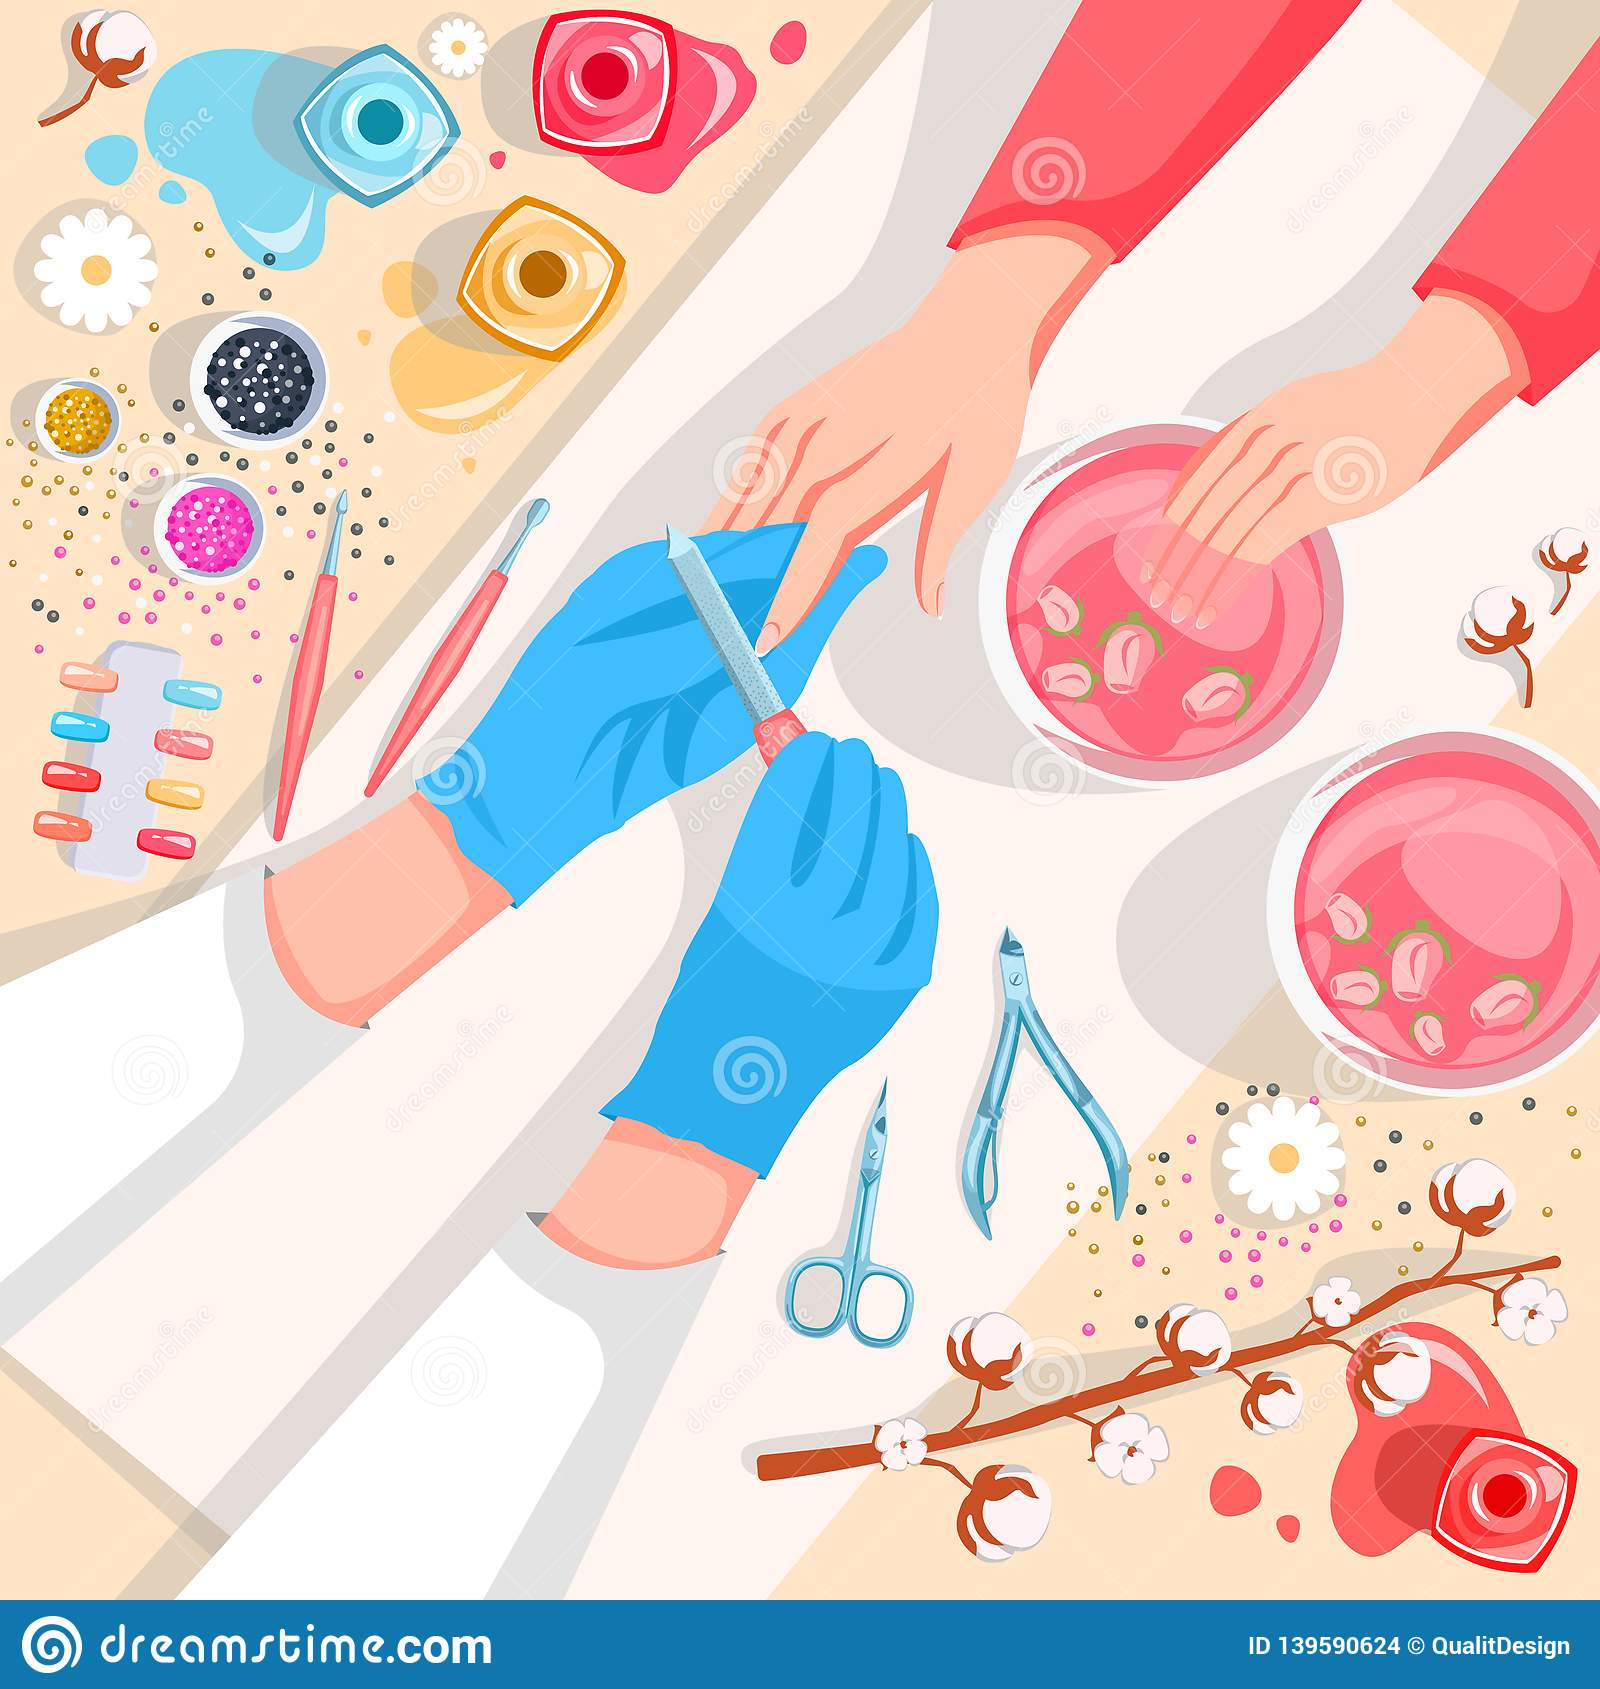 Manicure, hands and nails care top view illustration. Beauty salon and spa procedure concept